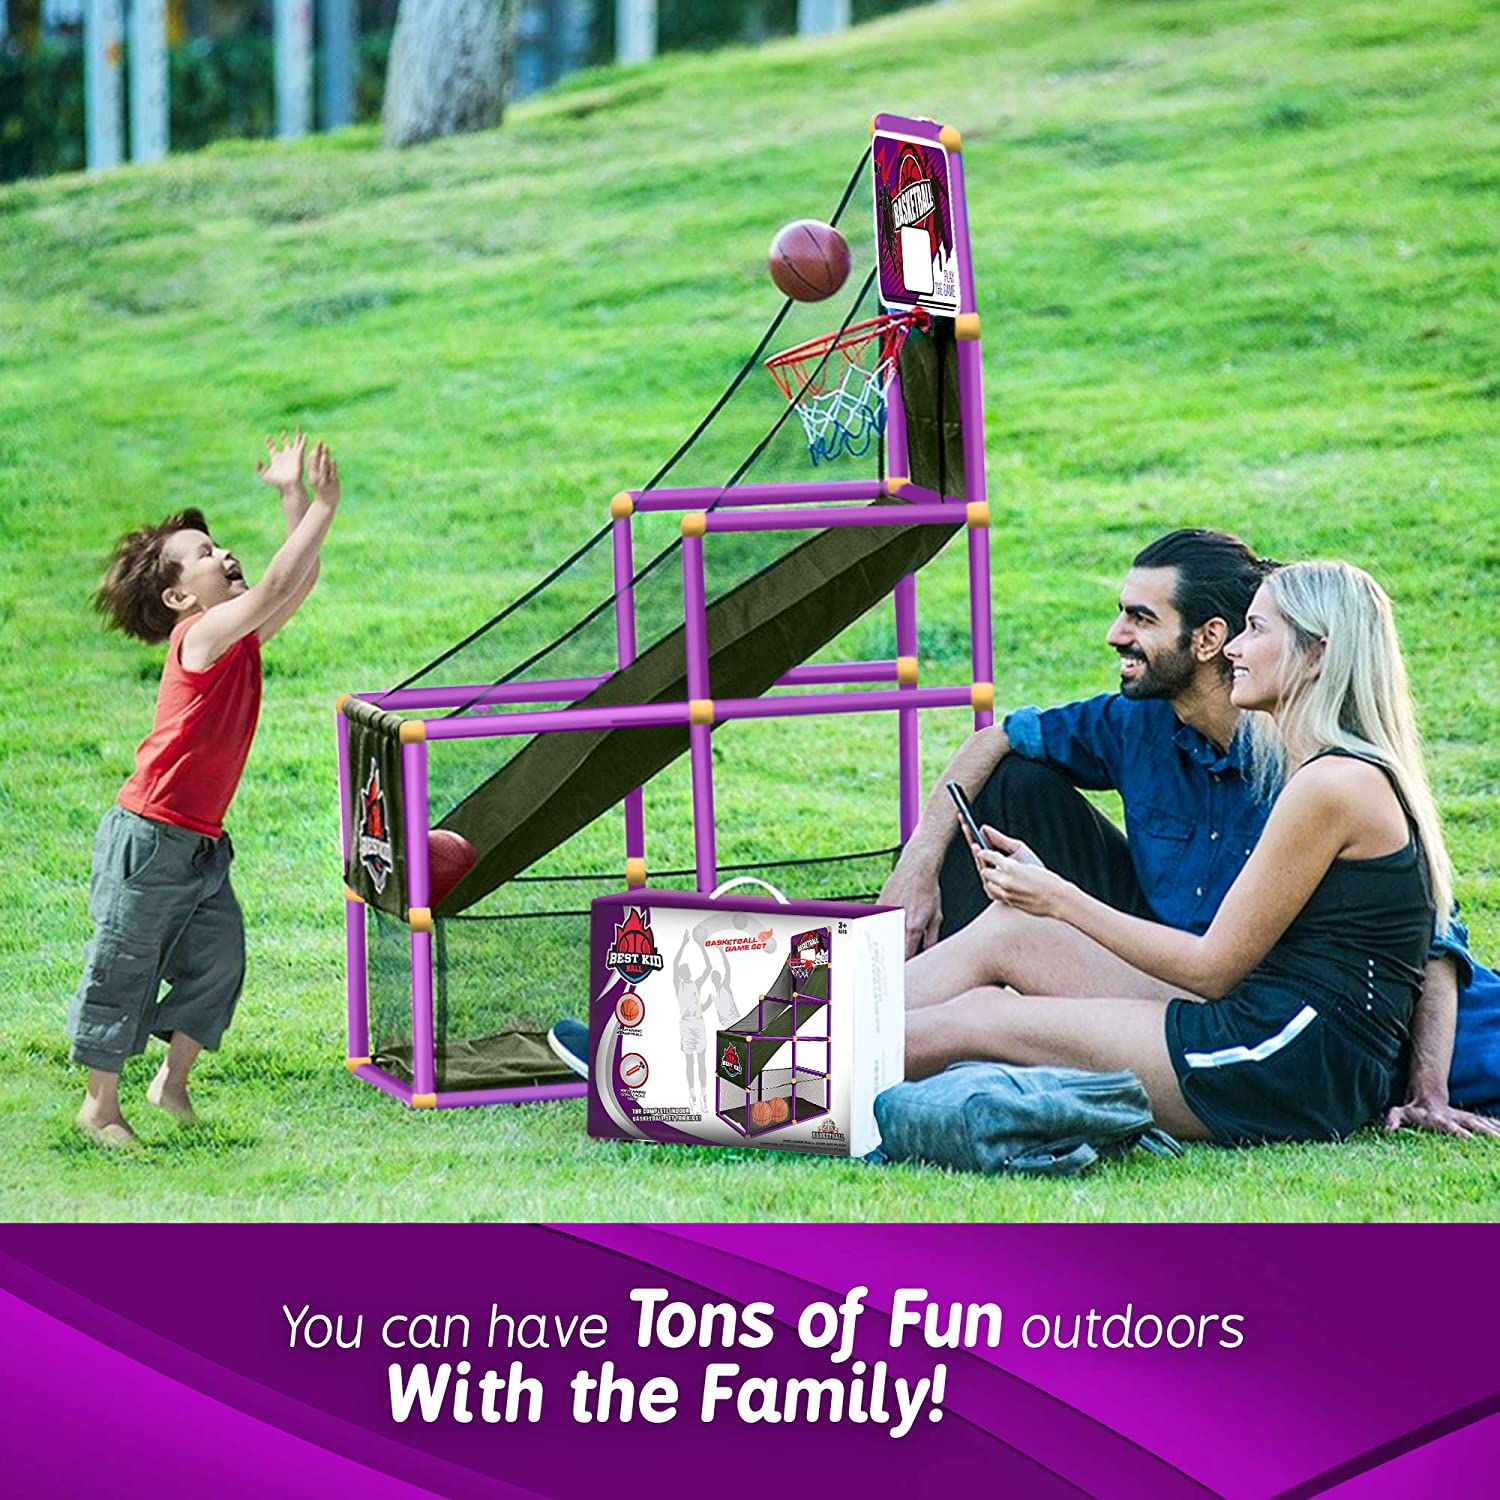 Arcade Purple Basketball Hoop Game by BestKidBall Fun and Entertaining Basement Toys Basketball Hoop for Kids Kids Indoor Sports Toys Basketball Game with Hoop Training System